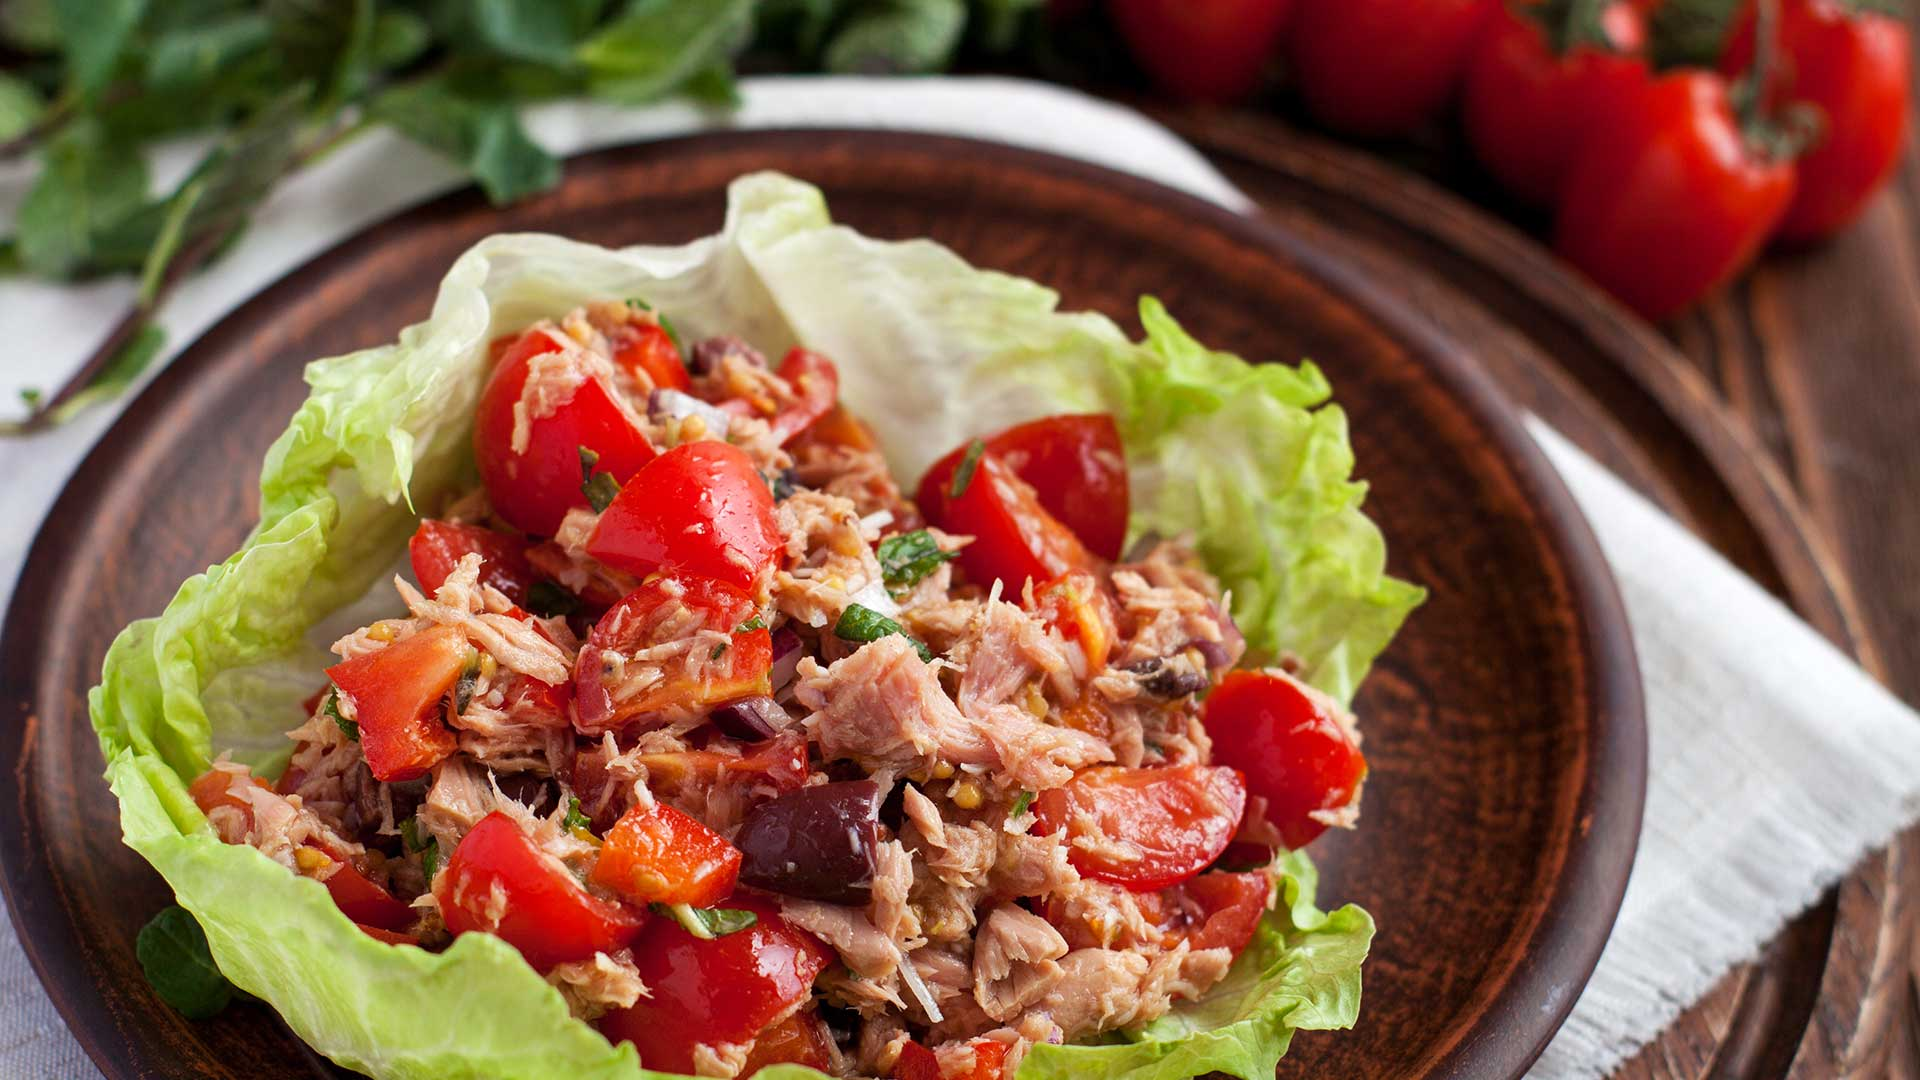 Healthy appetisers lettuce wraps with canned tuna, bell pepper, herbs on clay plate